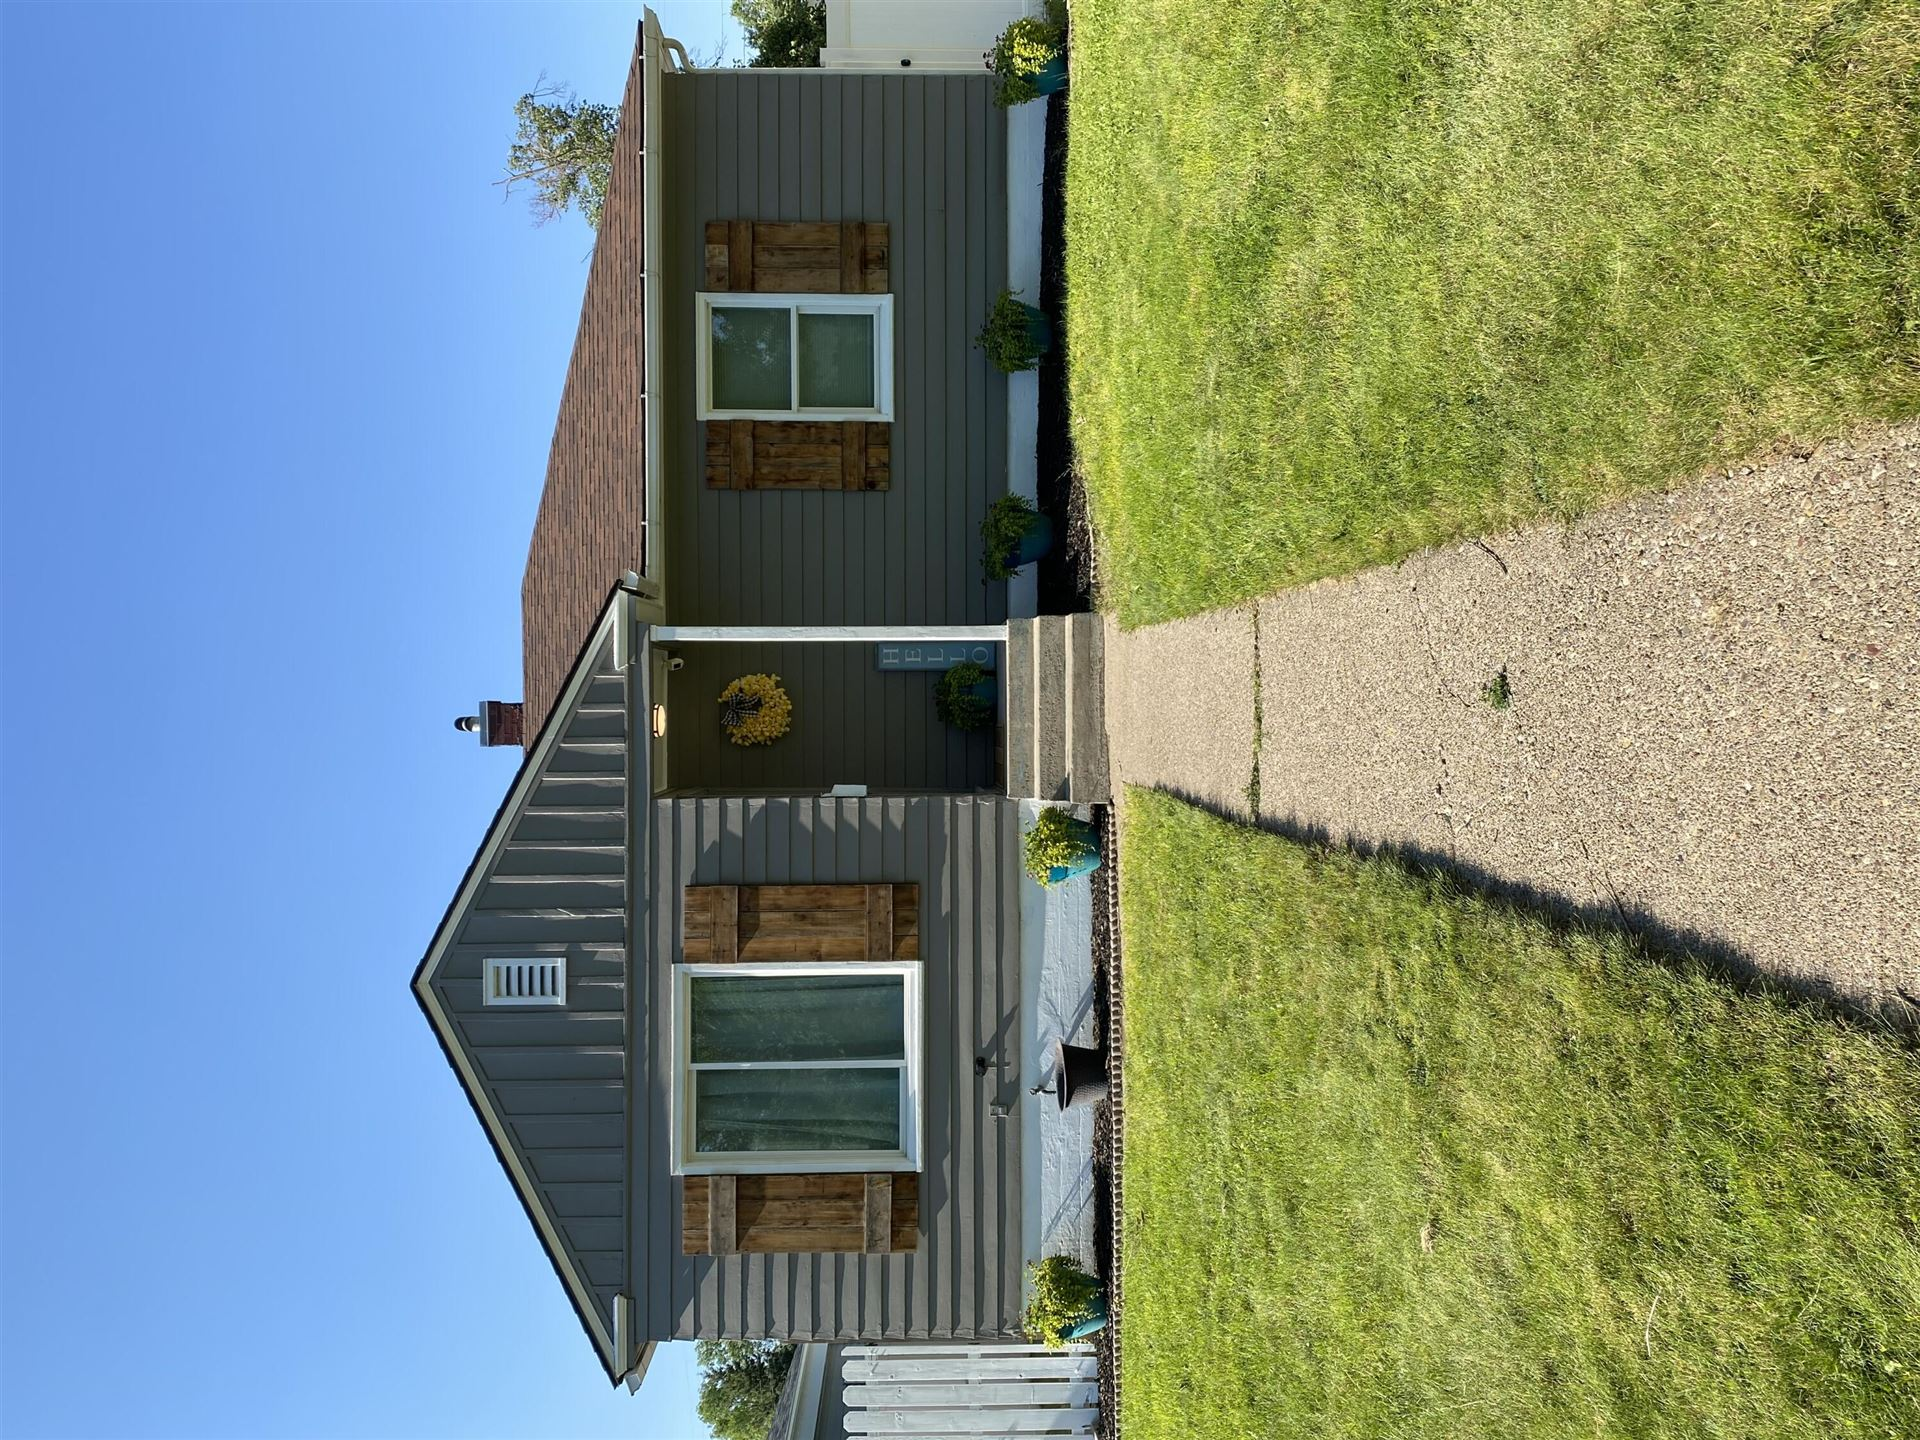 Photo of 2417 4th Avenue South, Great Falls, MT 59405 (MLS # 22111699)